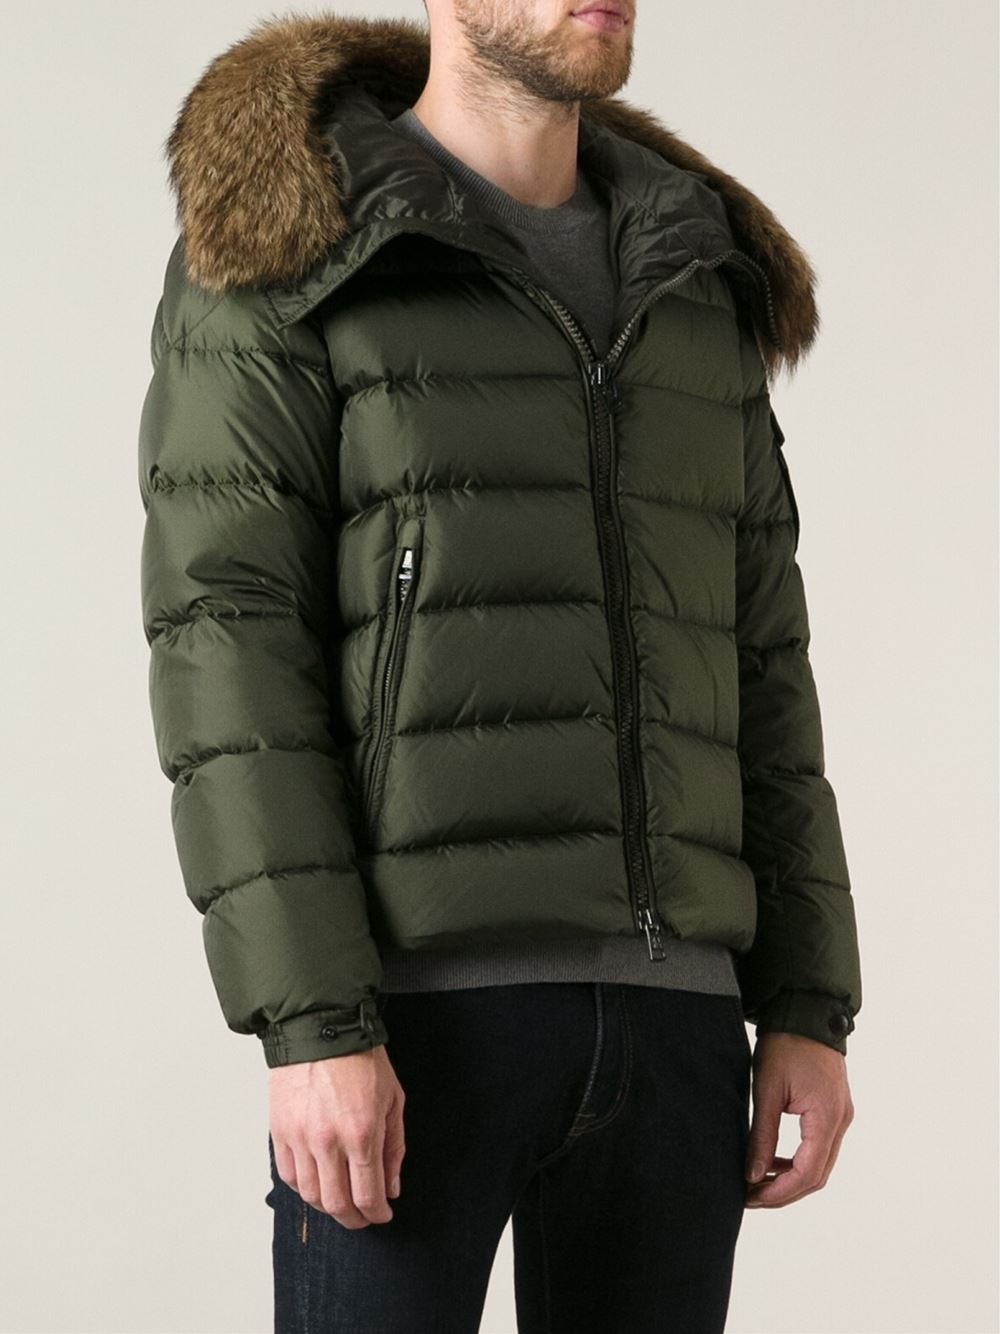 moncler green bomber jacket